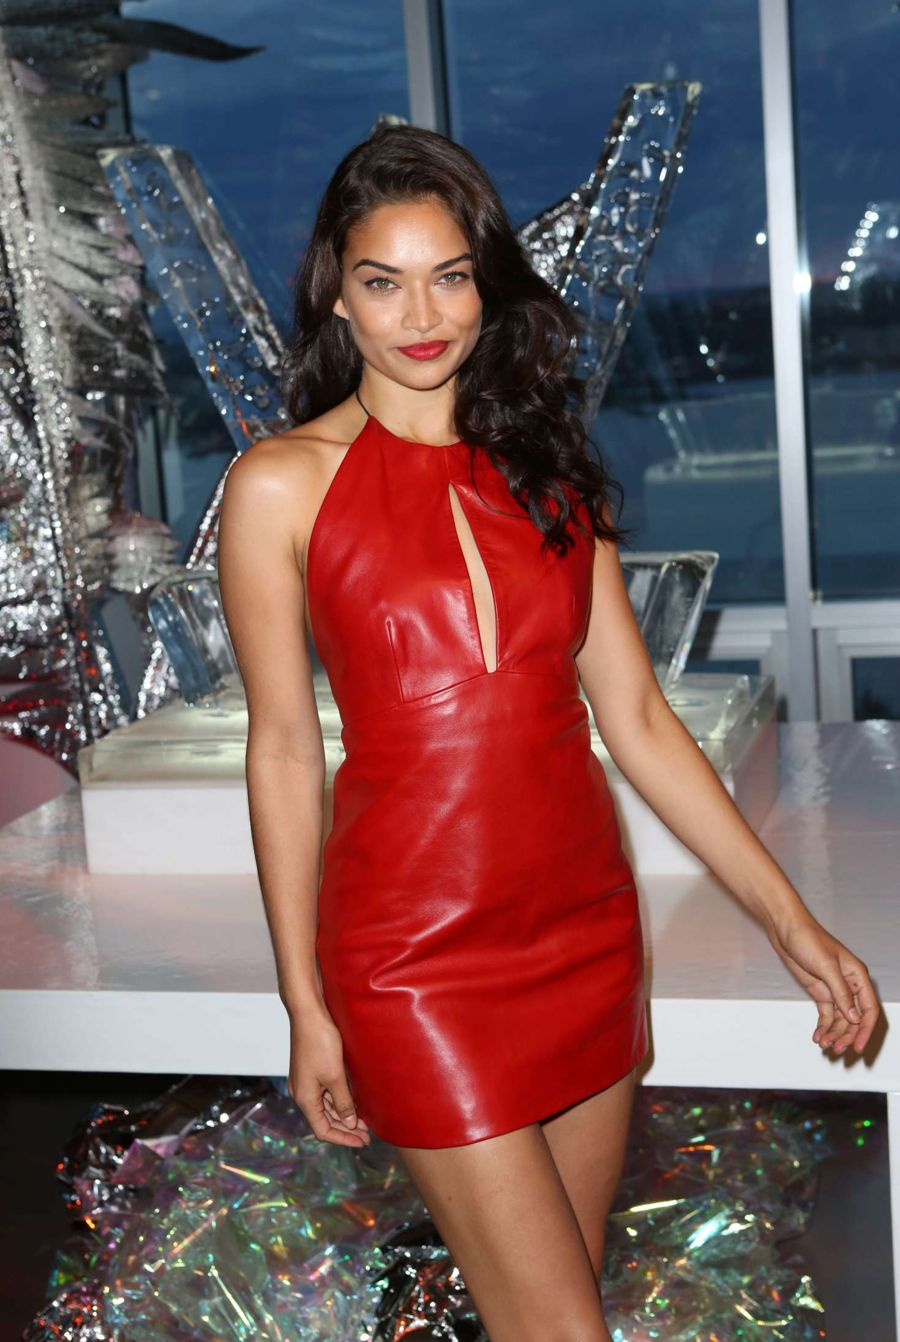 Shanina Shaik - Celebrate The Opening Of W Dubai Party